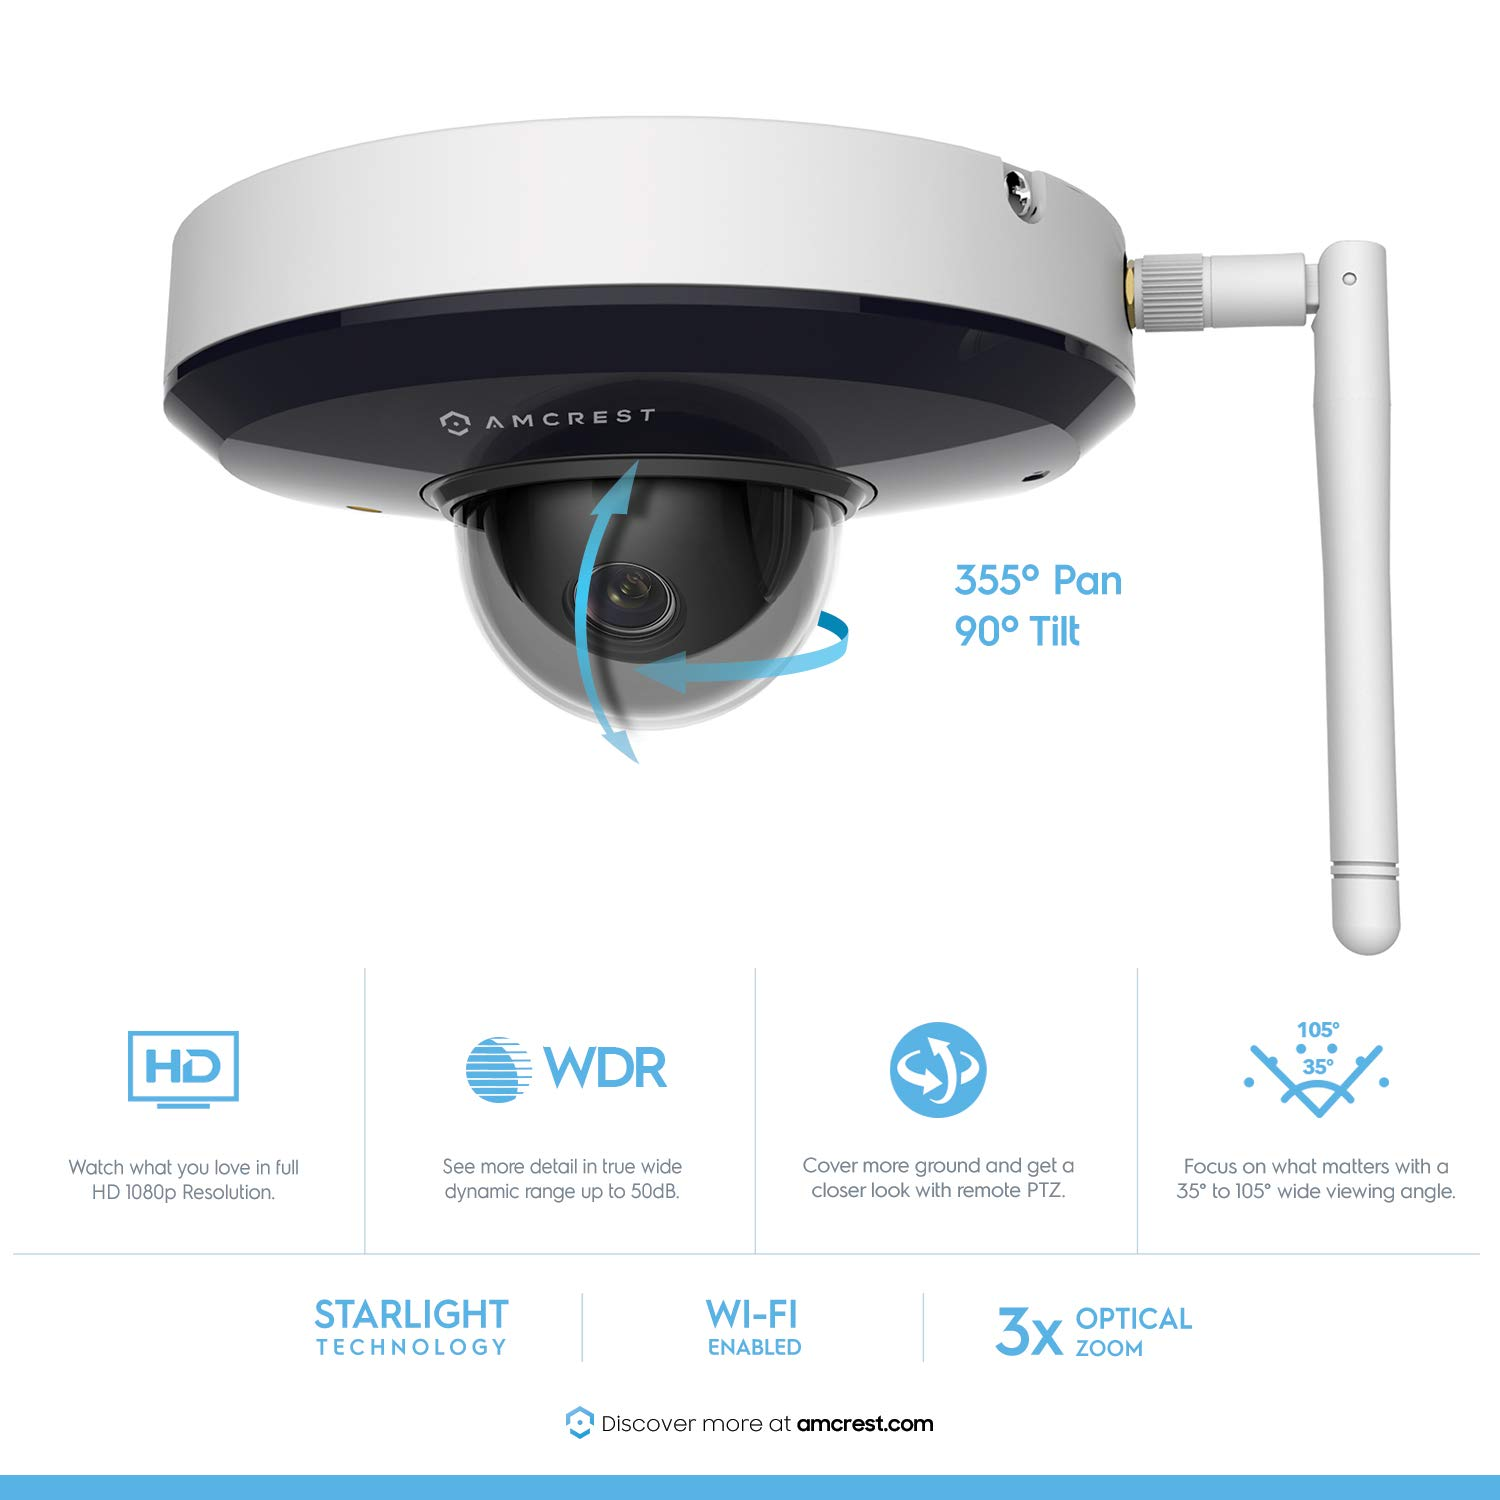 Amcrest ProHD 1080P PTZ WiFi Camera, 2MP Outdoor Vandal Dome IP Camera 3X Optical Zoom IK08 Vandal-Proof, IP66 Weatherproof, Dual Band 5ghz 2.4ghz, 2019 Updated Firmware, Pan Tilt IP2M-866W White